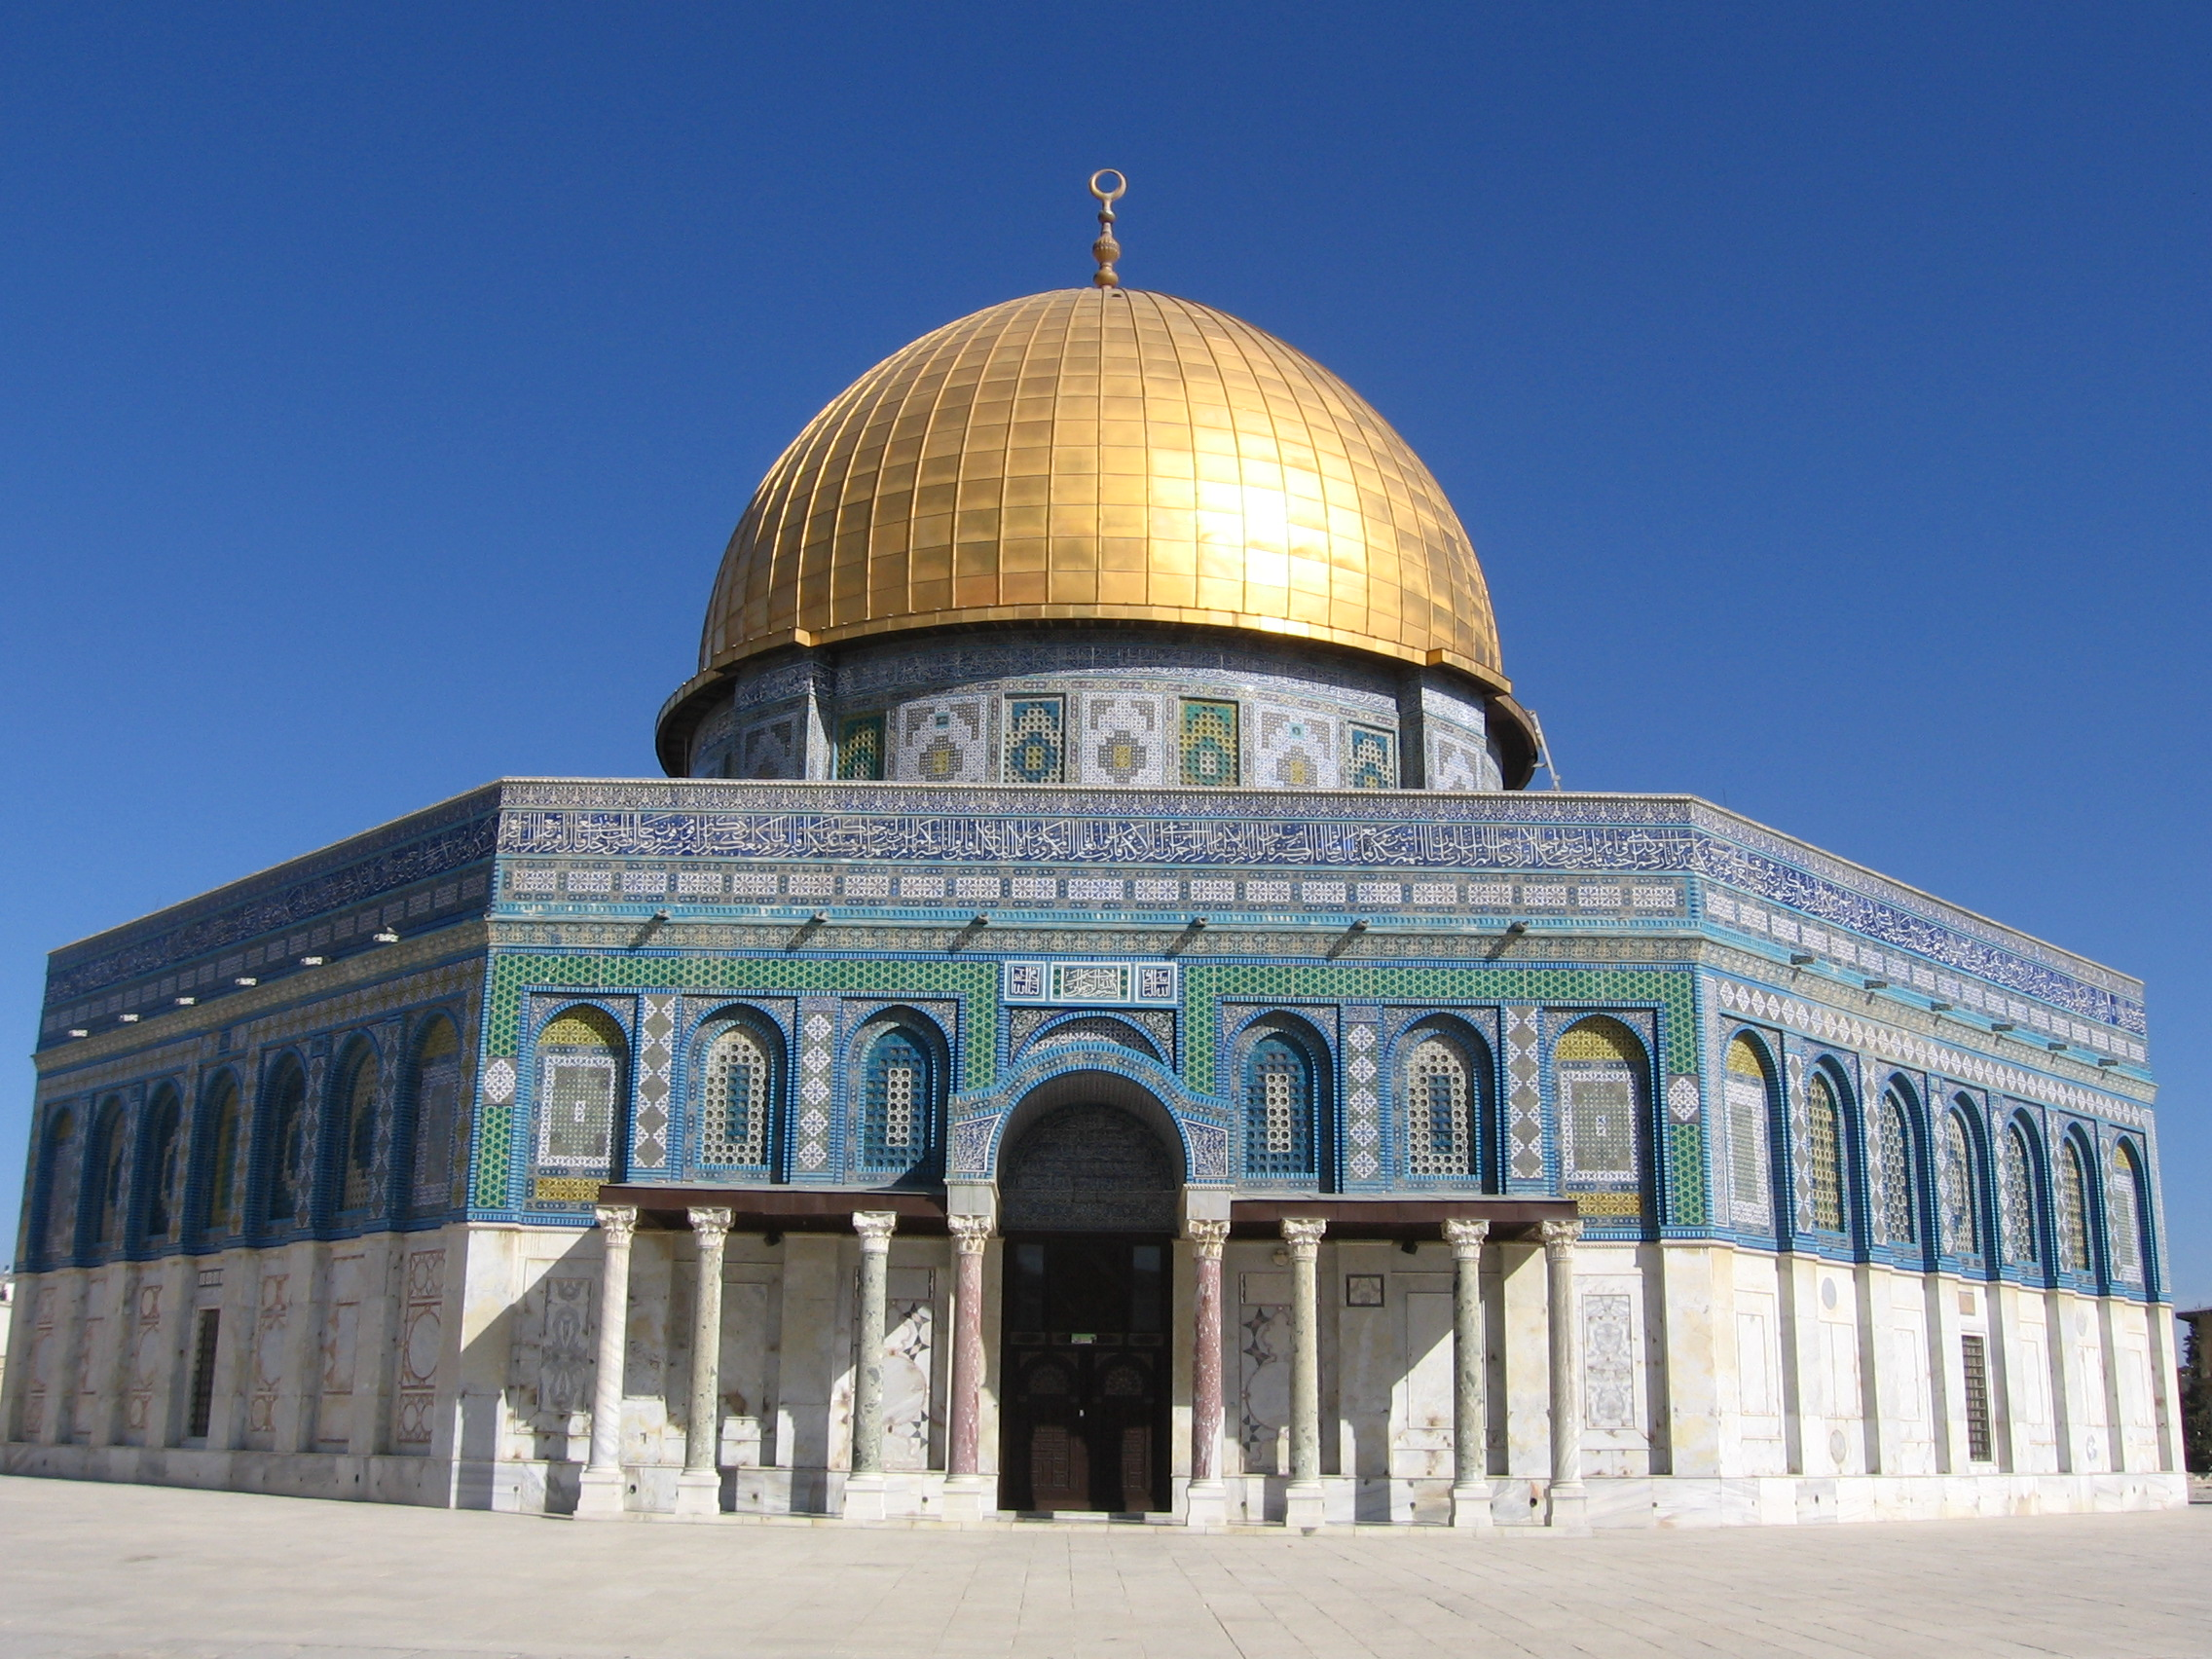 dome of the rock The dome of the rock is situated in the center of the temple mount, the site of the temple of solomon and the jewish second temple, which had been greatly expanded under herod the great in the 1st century bce.